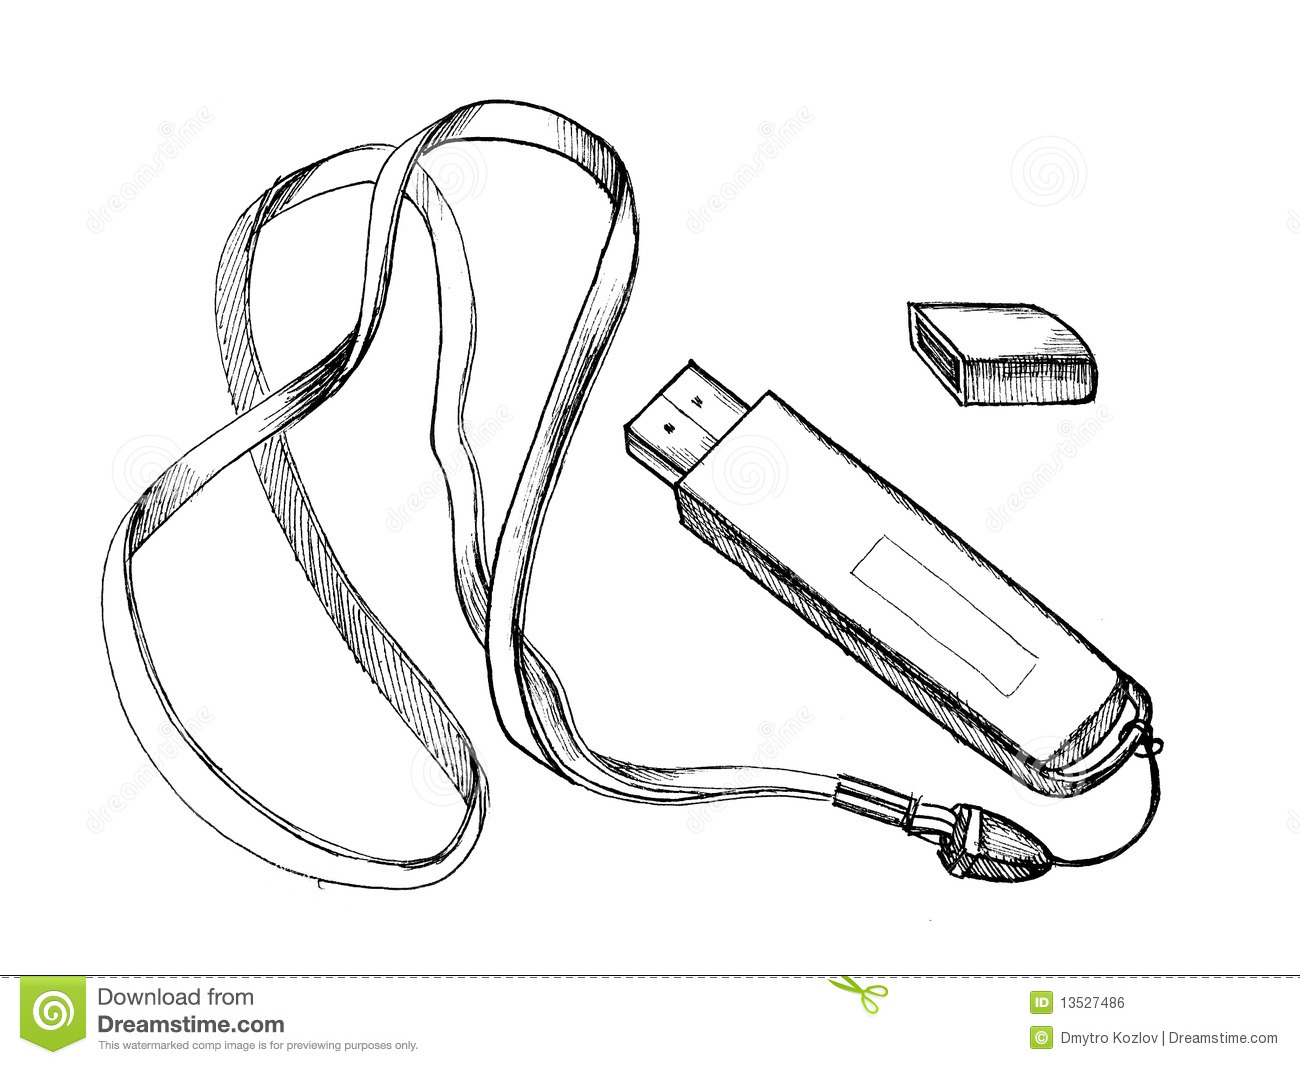 Flash Drive Royalty Free Stock Image